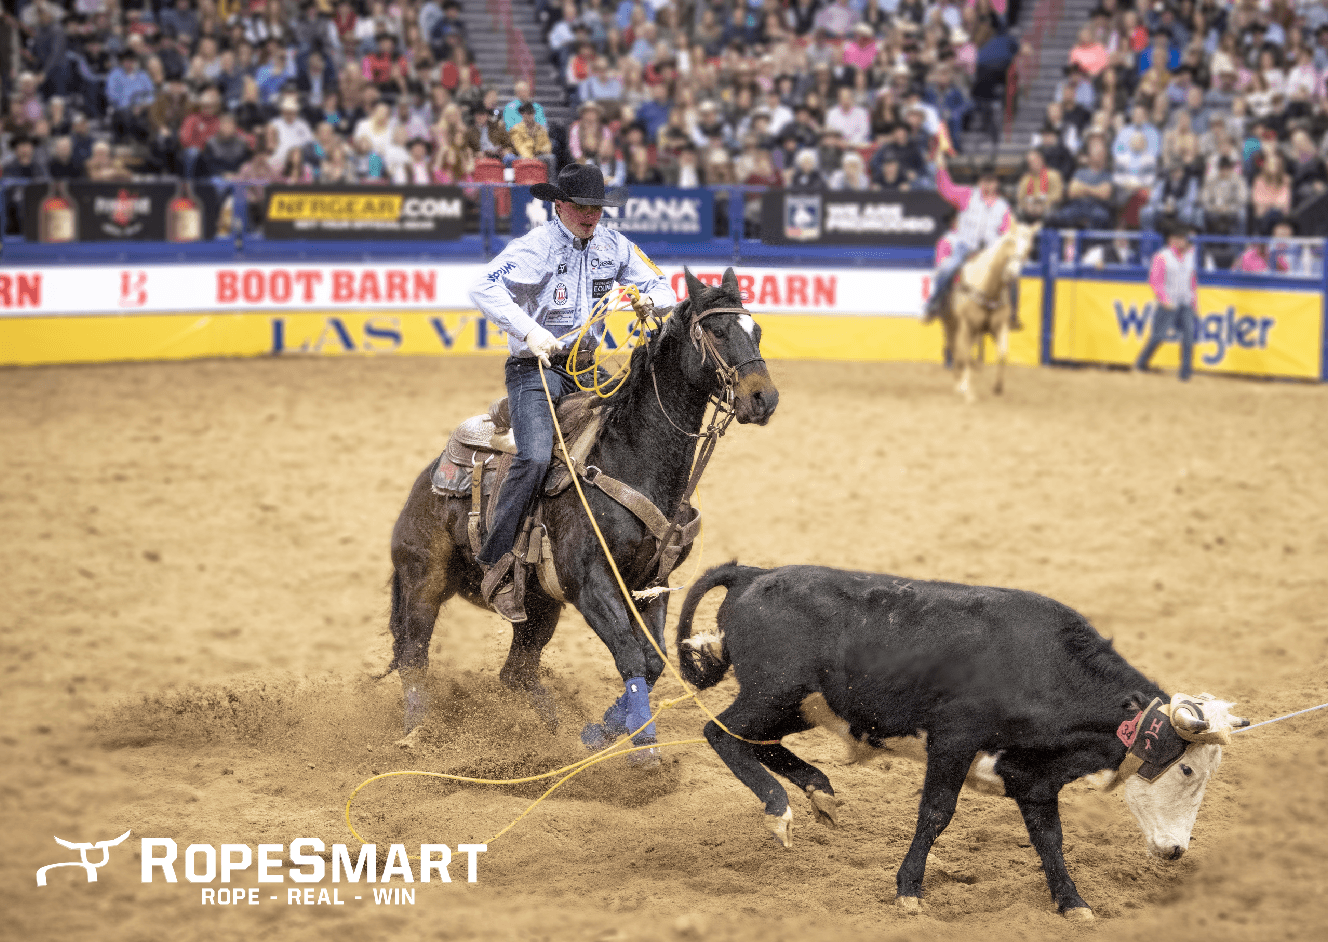 Wesley Thorp Round 5 at the 2019 WNFR